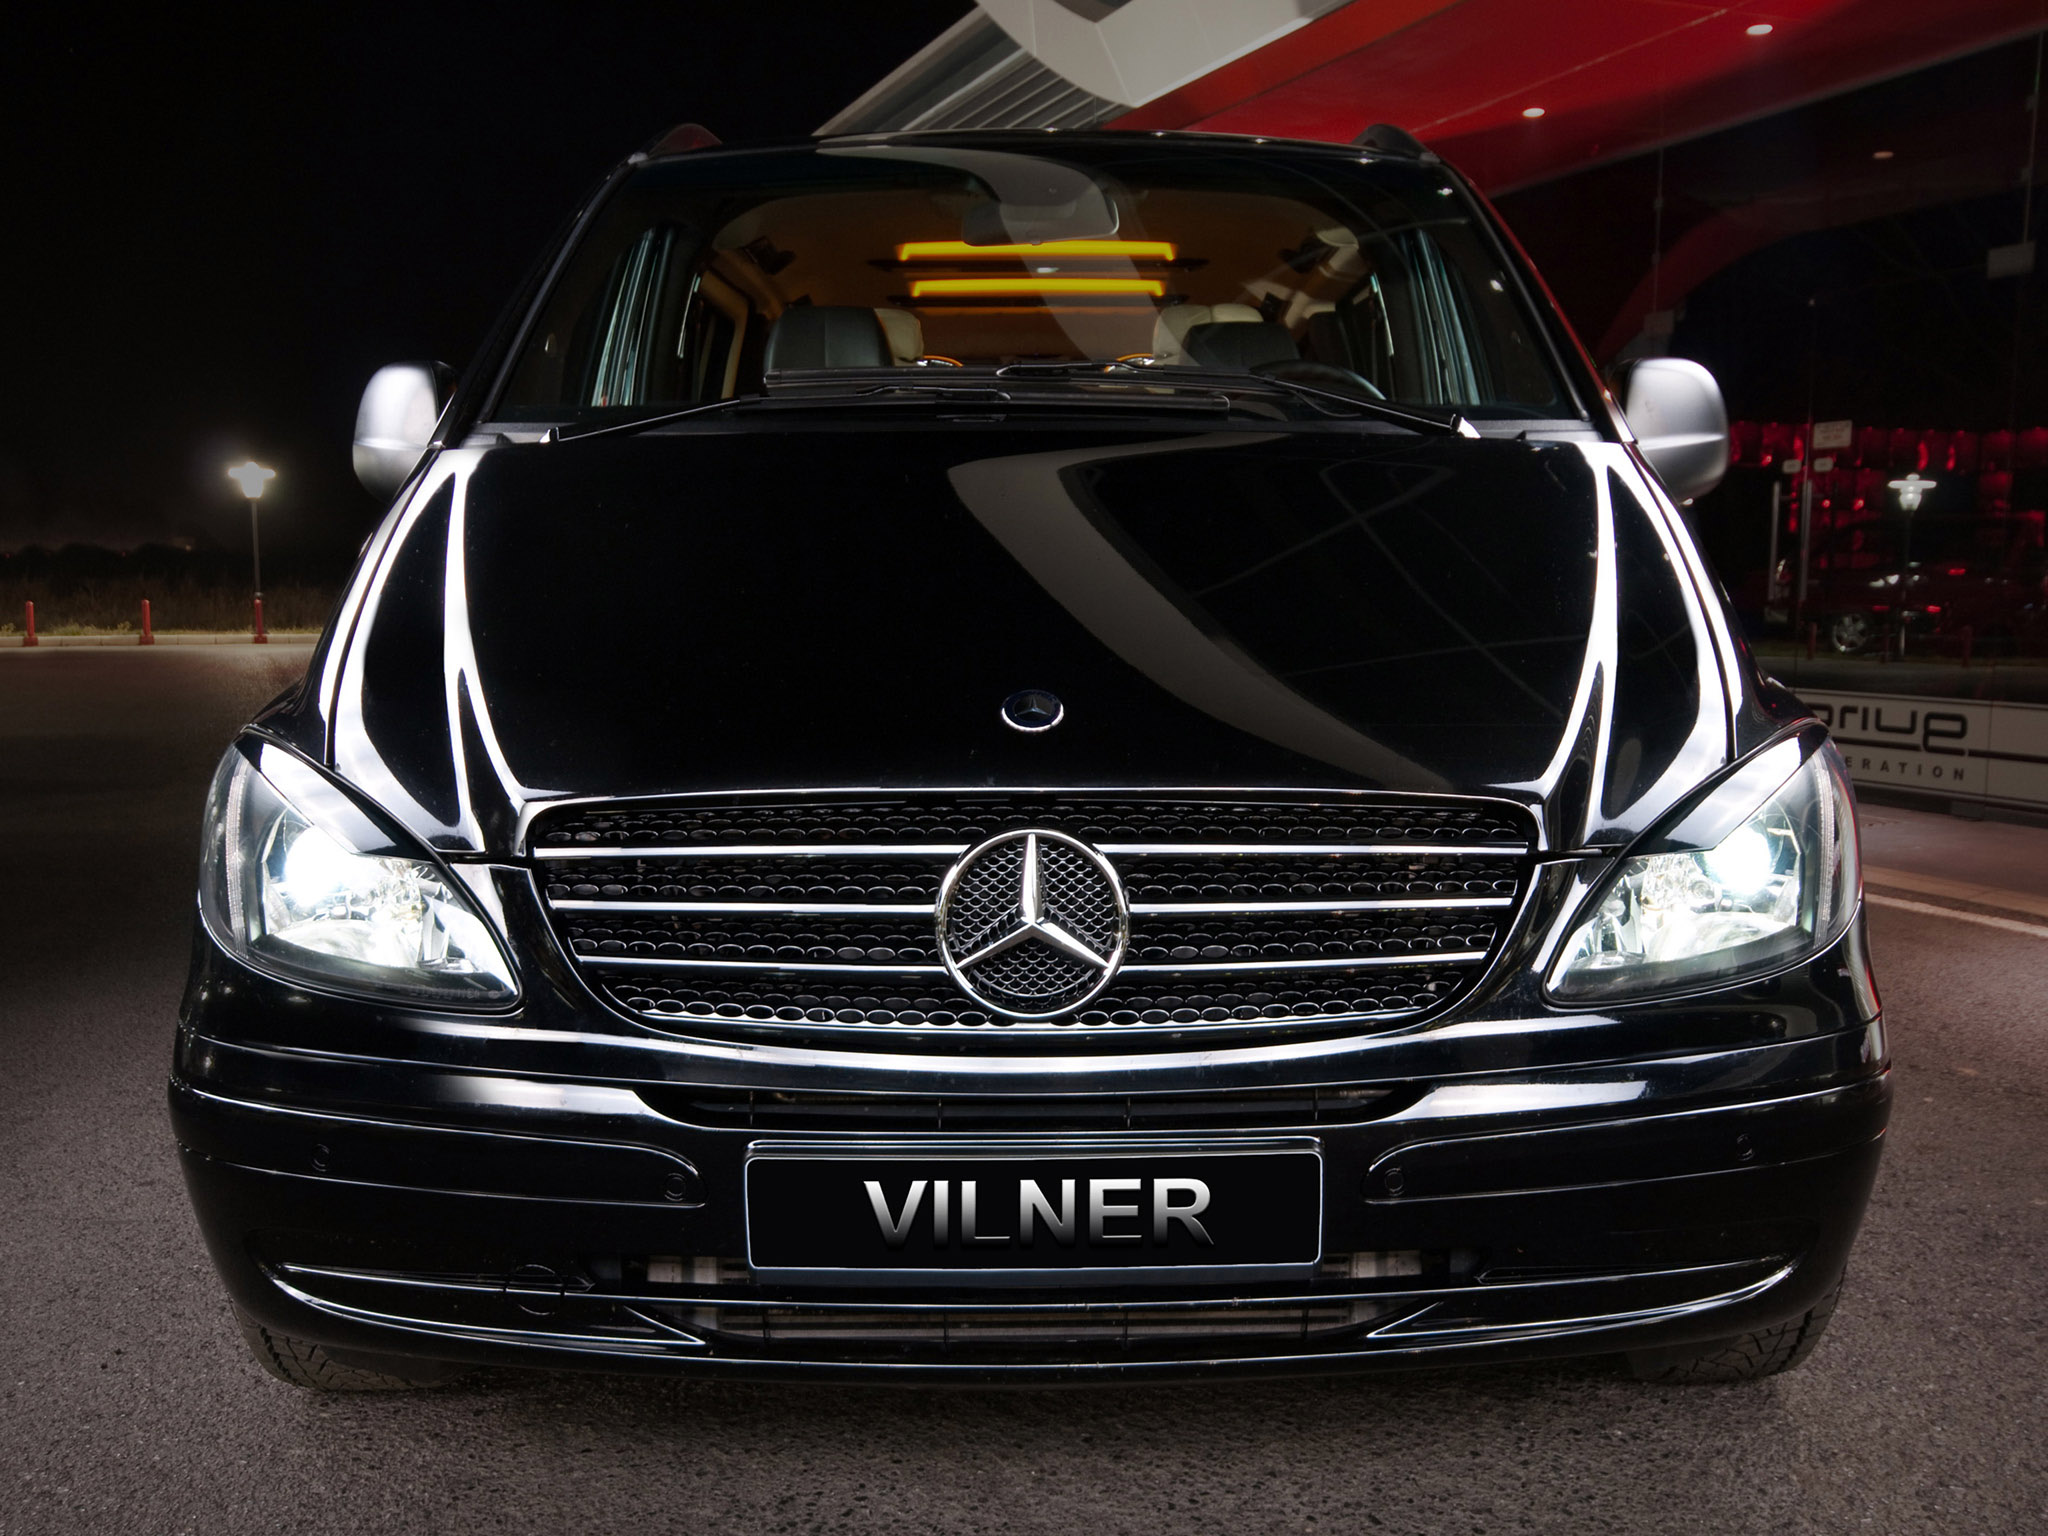 Car in pictures - car photo gallery » Vilner Mercedes Vito ...